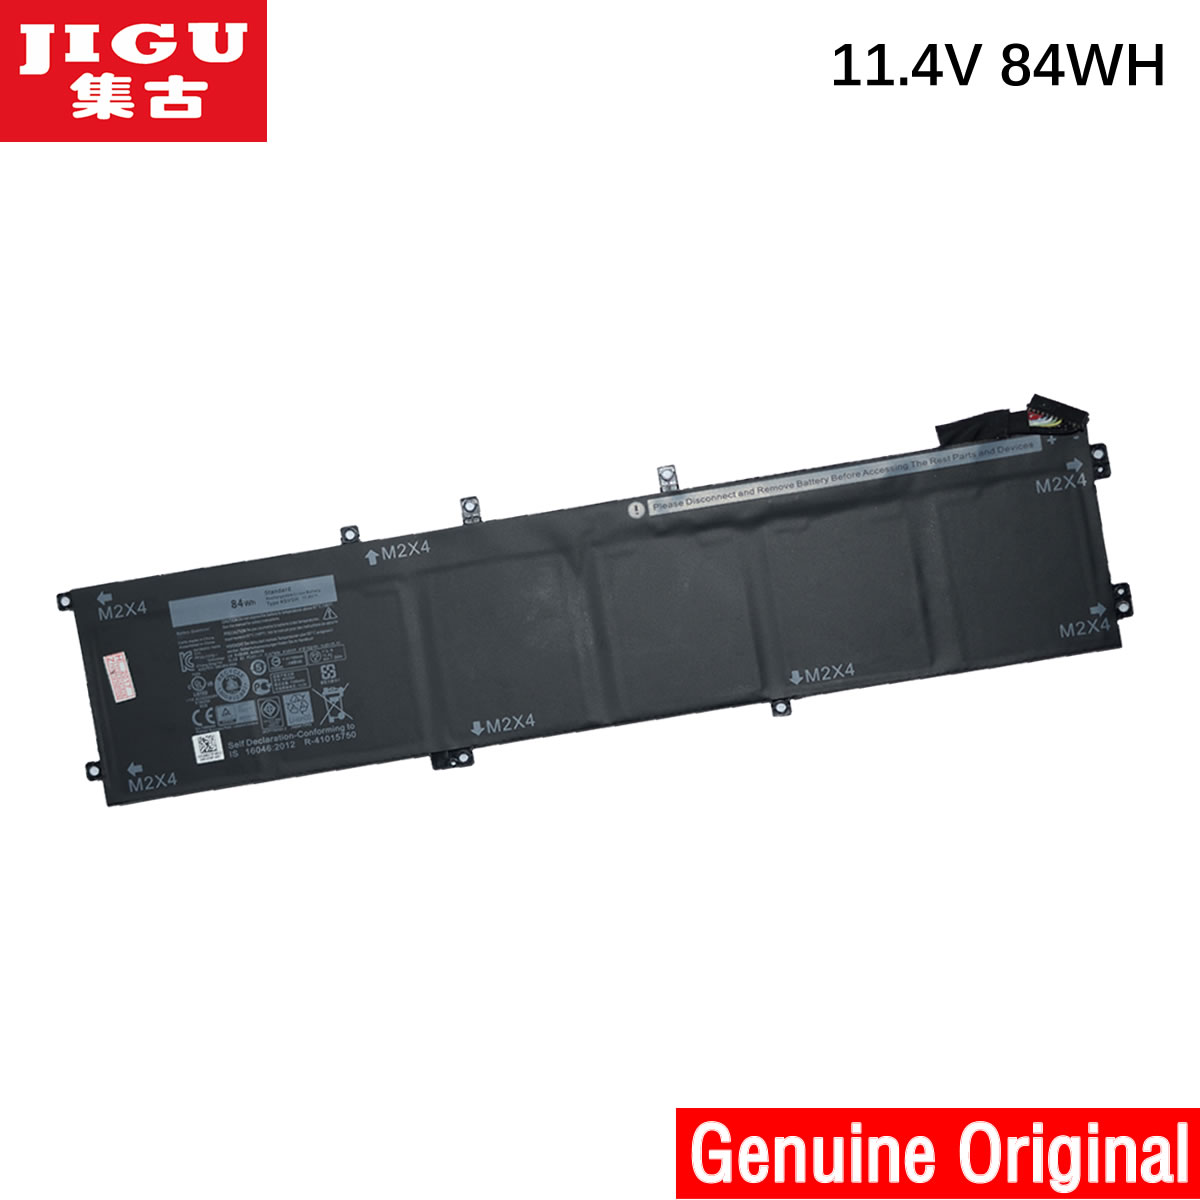 JIGU Original Laptop Battery 1P6KD 4GVGH RRCGW For DELL For Precision 5510 XPS 15 9550 XPS15 9550 image